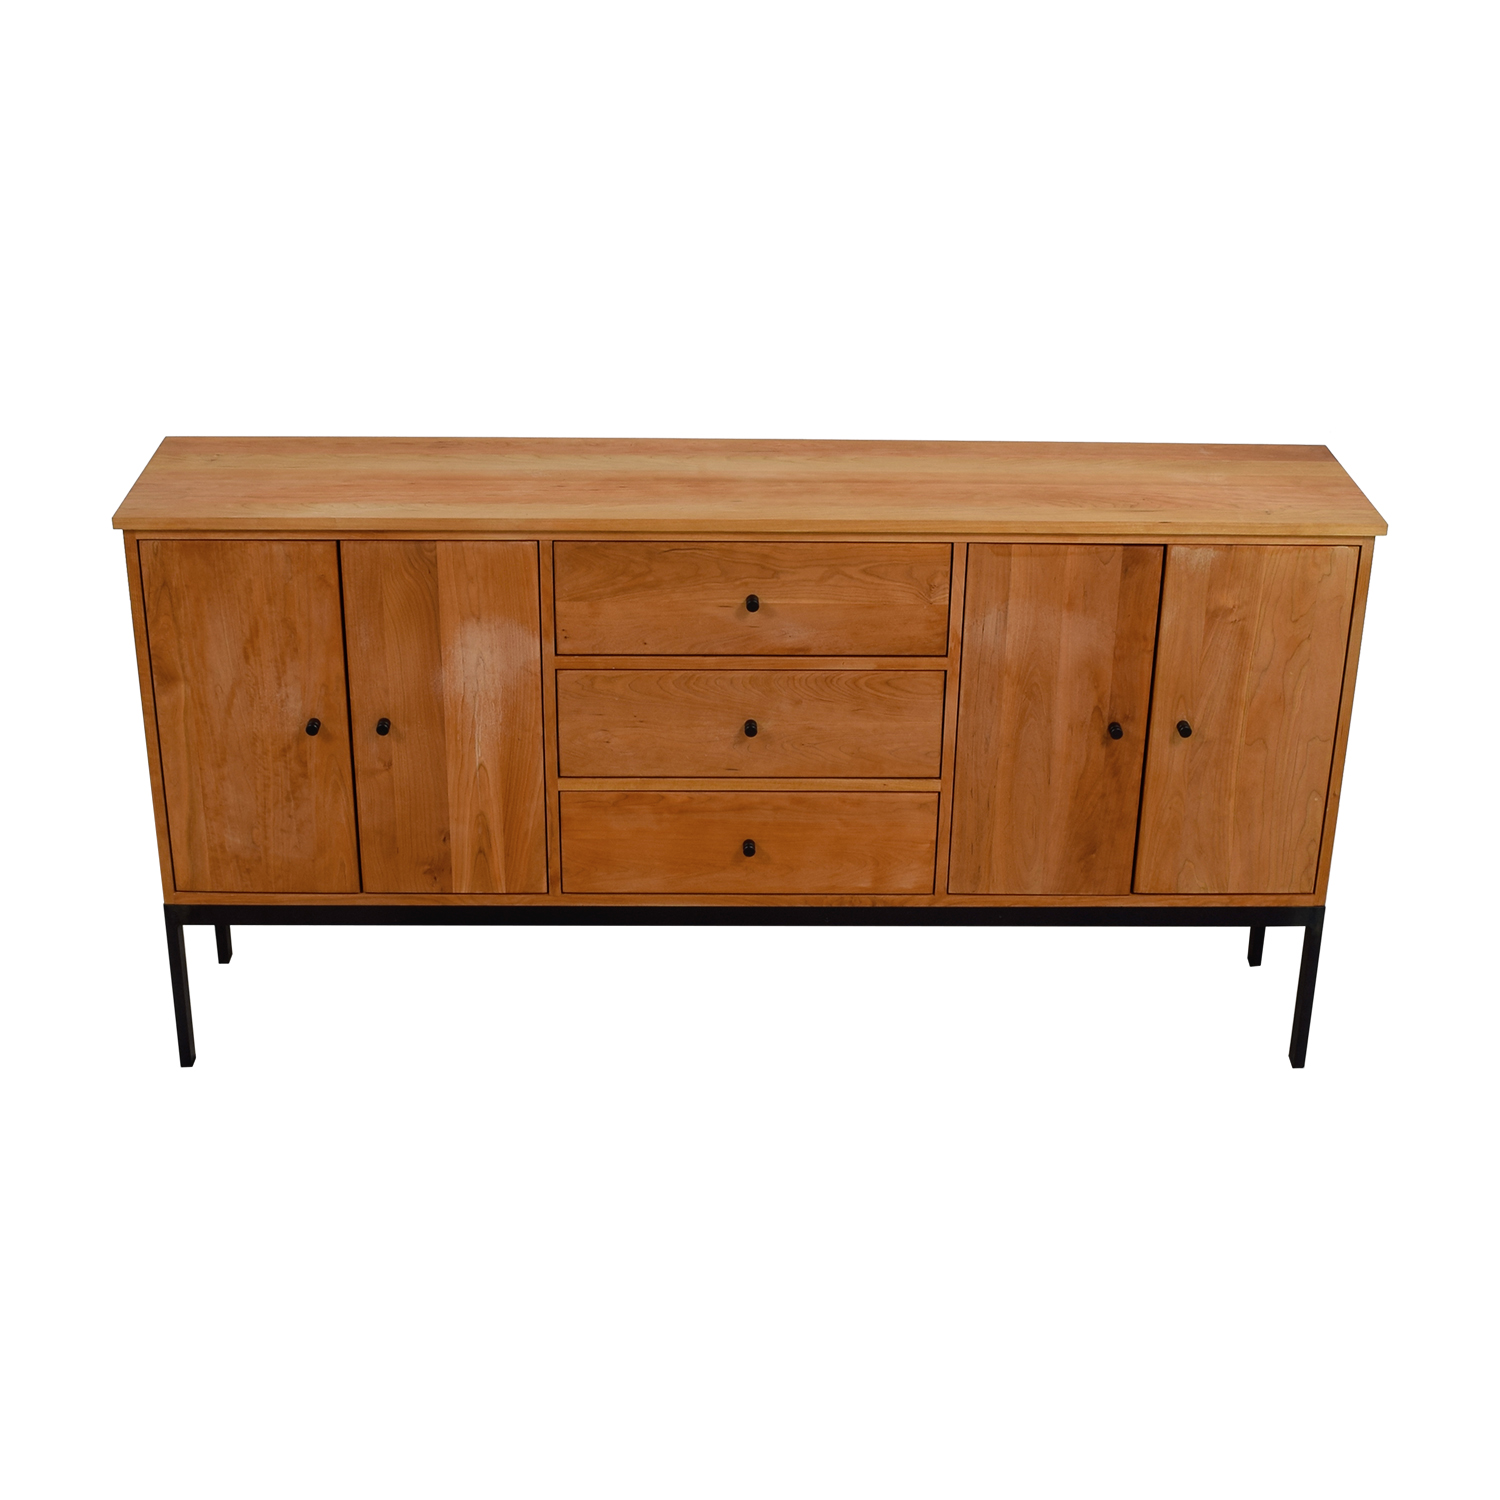 Room & Board Wood Storage Cabinet / Cabinets & Sideboards